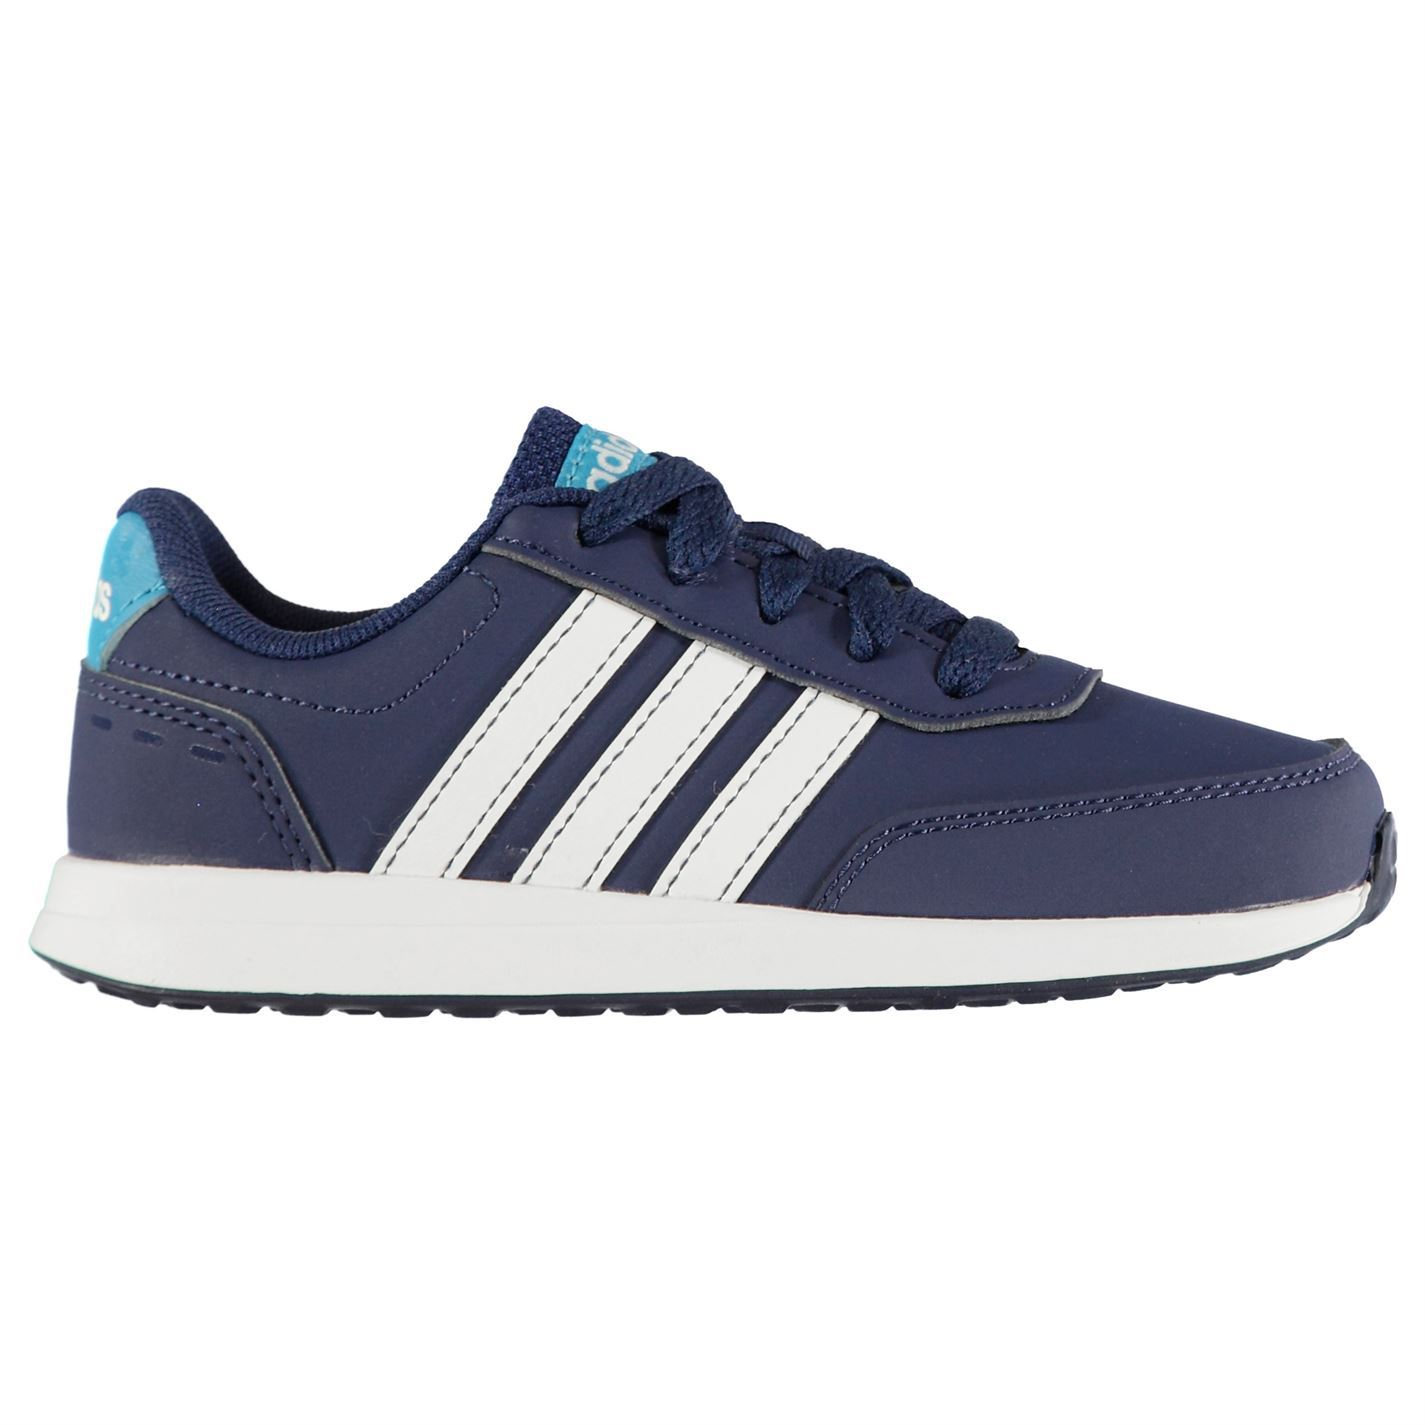 adidas Switch Nubuck Childrens Boys Sneakers Runners Laces Fastened Everyday